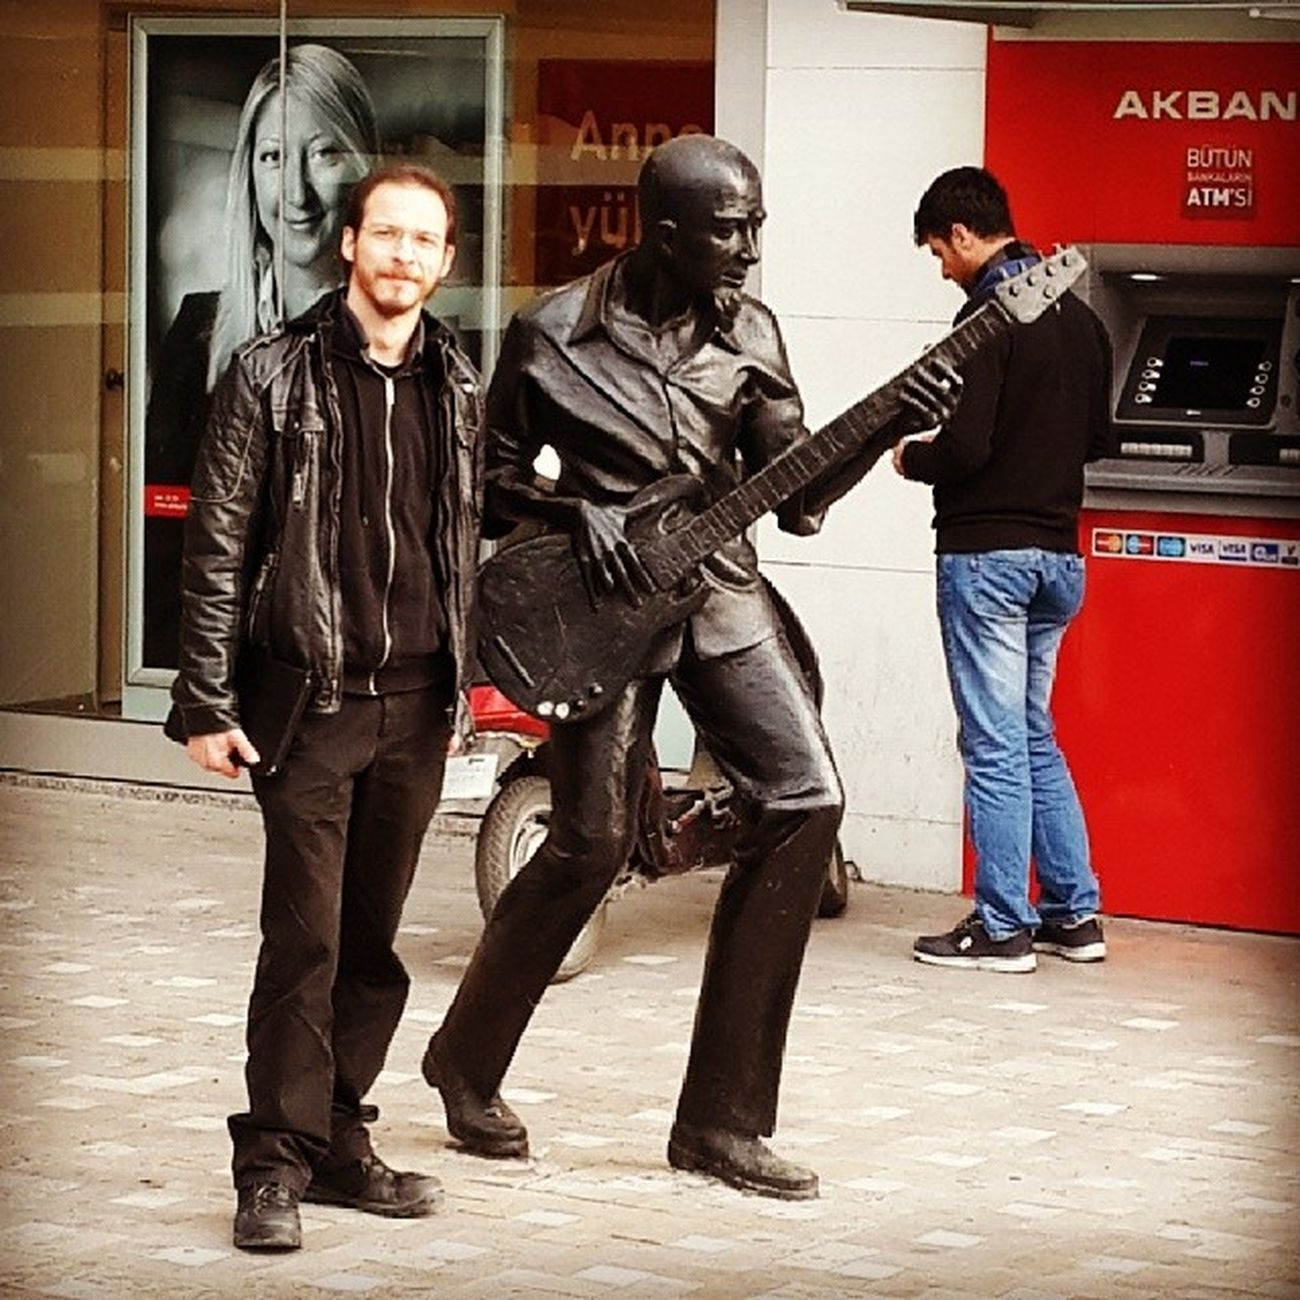 Antalya Antalya Turkey Bass Guitar Black Streetphotography On The Road Selfportrait Self Portrait Memyself&ı Rock'n'Roll